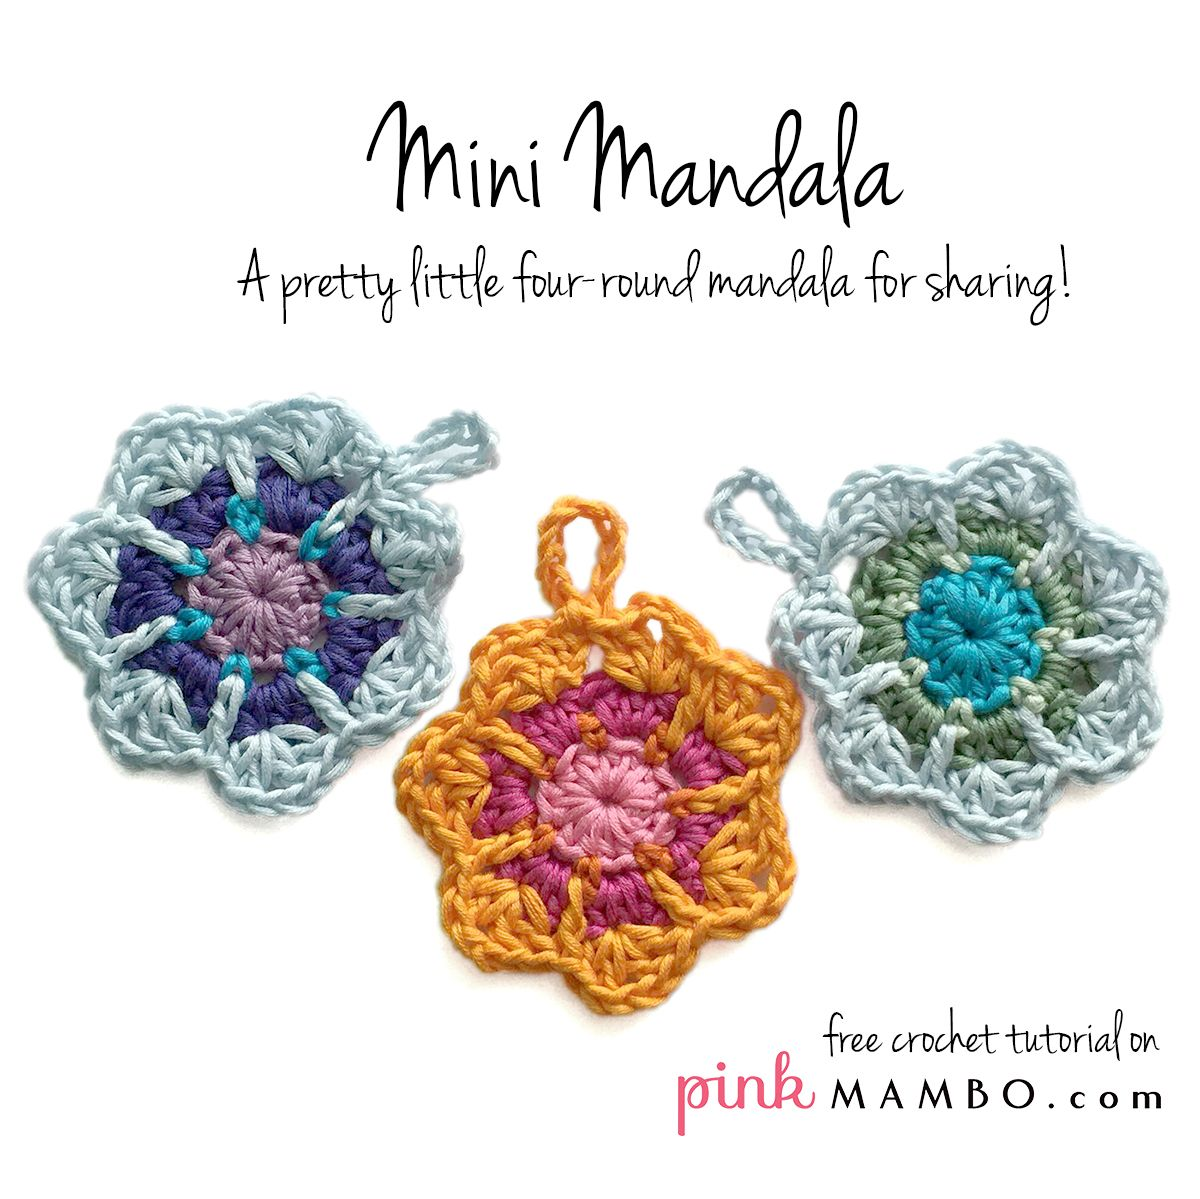 Crochet Mini Mandala Free Pattern would make a cute little snowflake ...